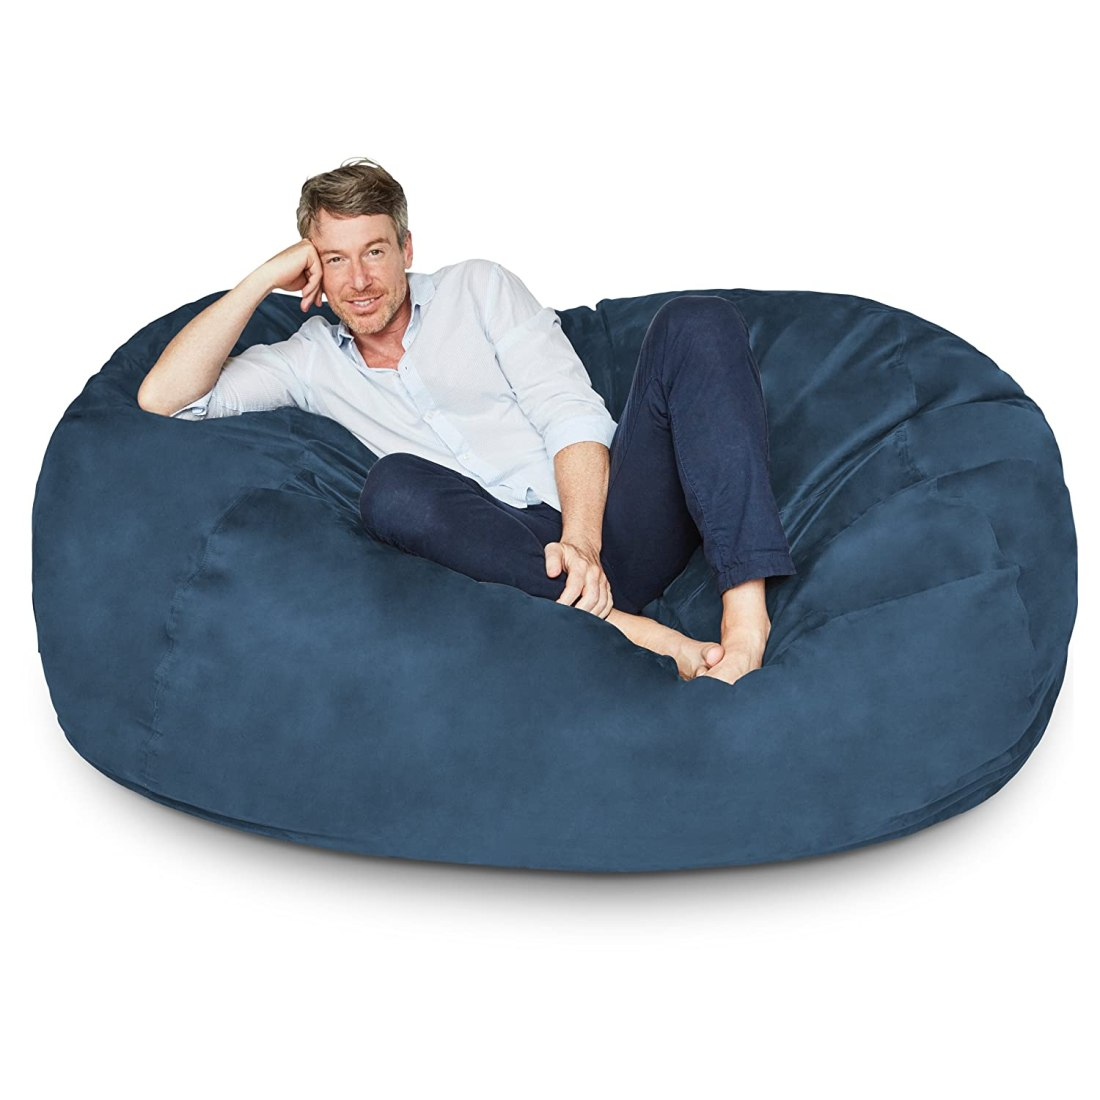 Boy Sitting In Bean Bag Chair